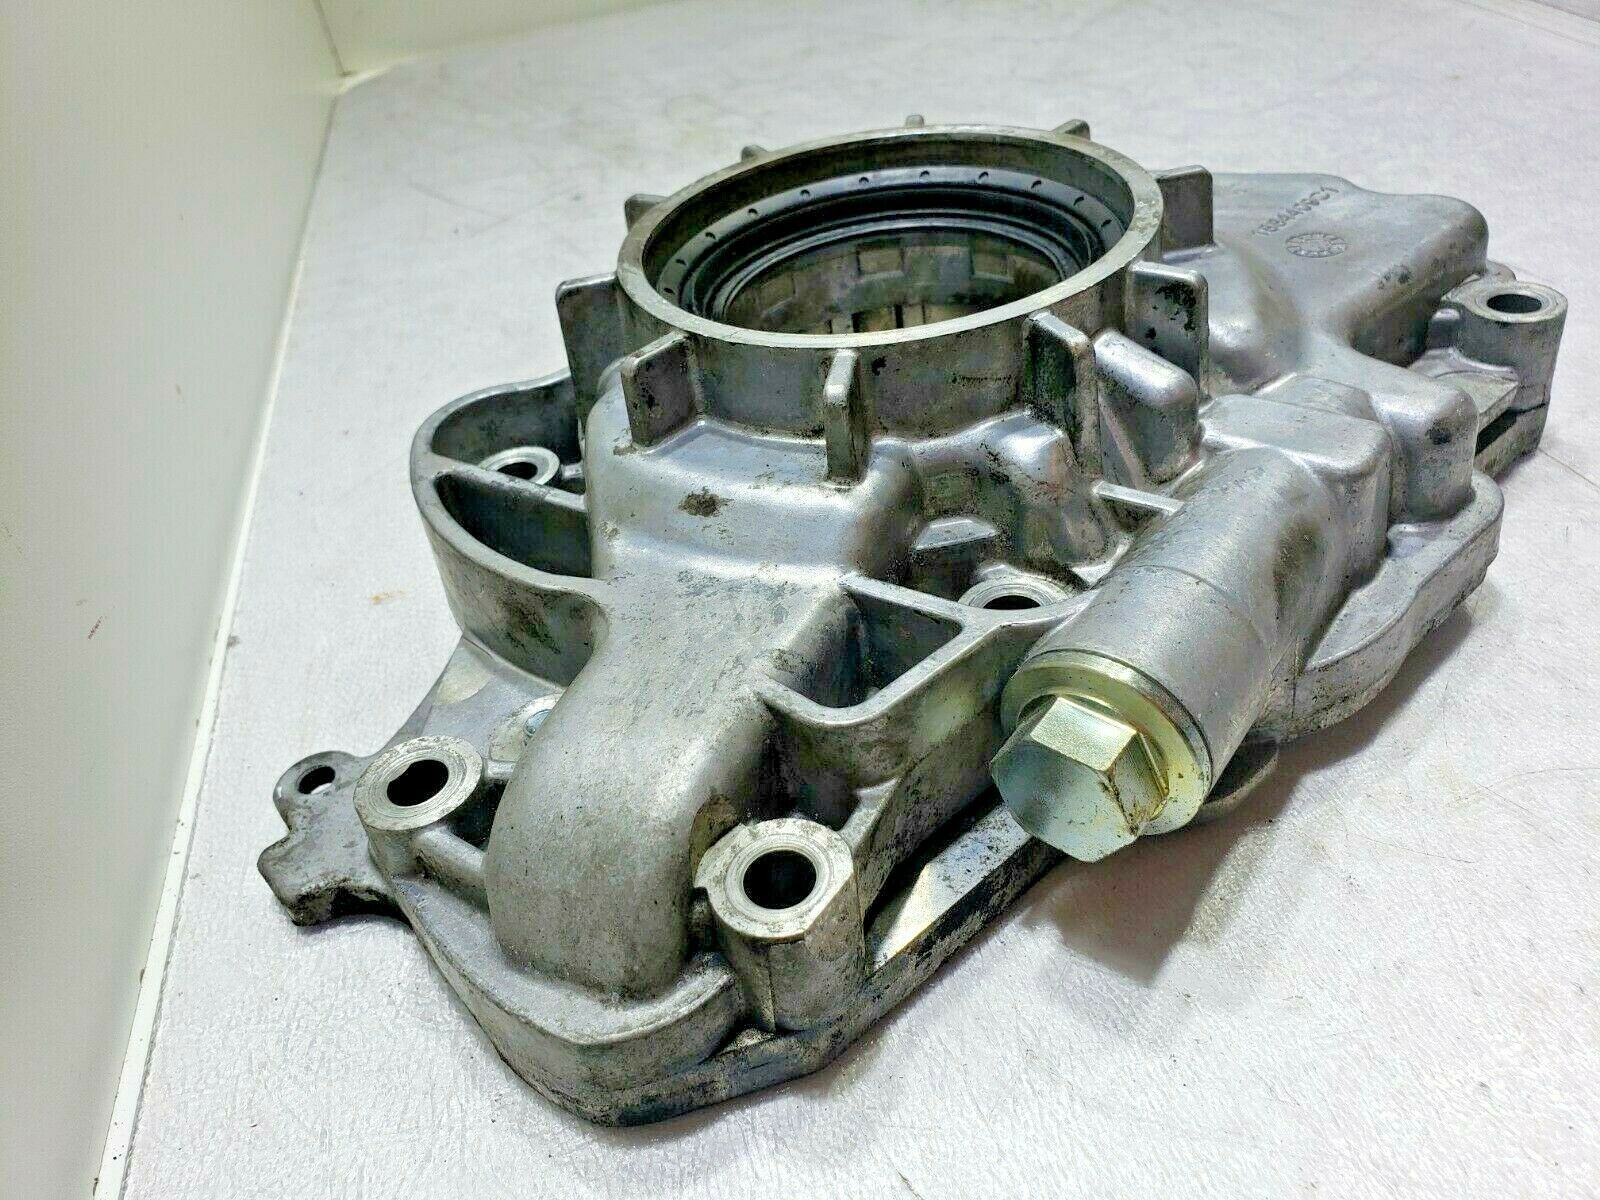 Front Cover Oil Pump LPOP Water Ford F250/F350 Powerstroke 6.0 1884409C1 image 2